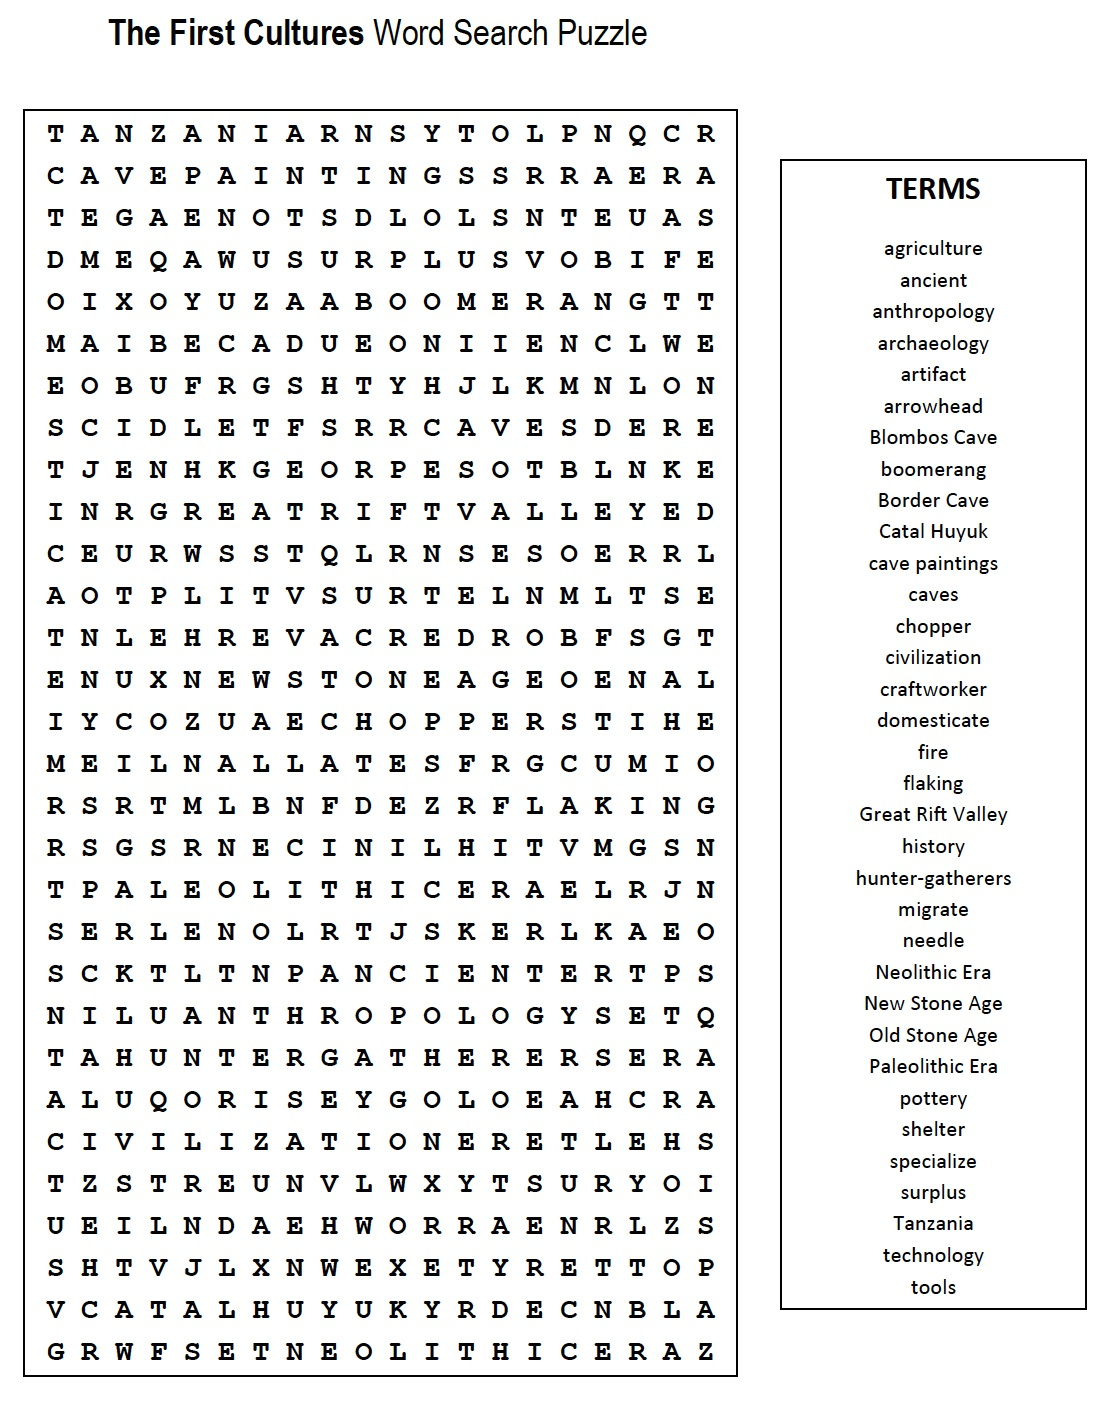 First Cultures Word Search | Mr. Proehl's Social Studies Class